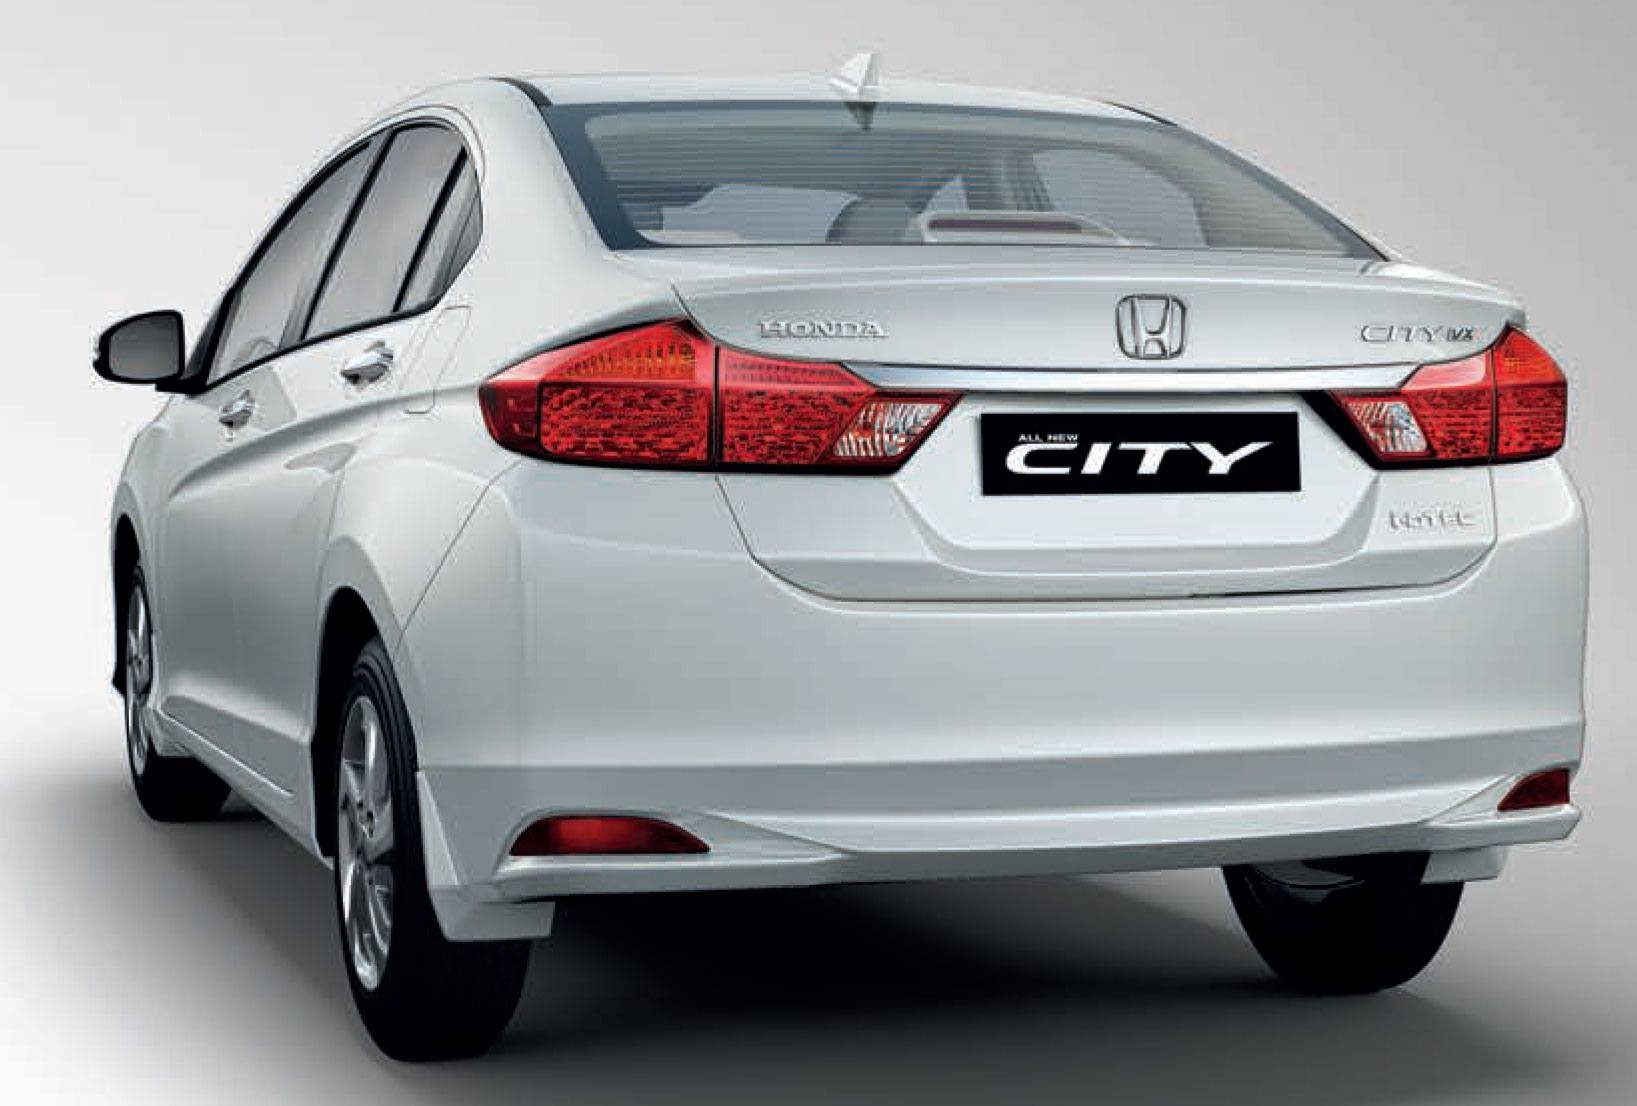 2014 Honda City launched in India – new details